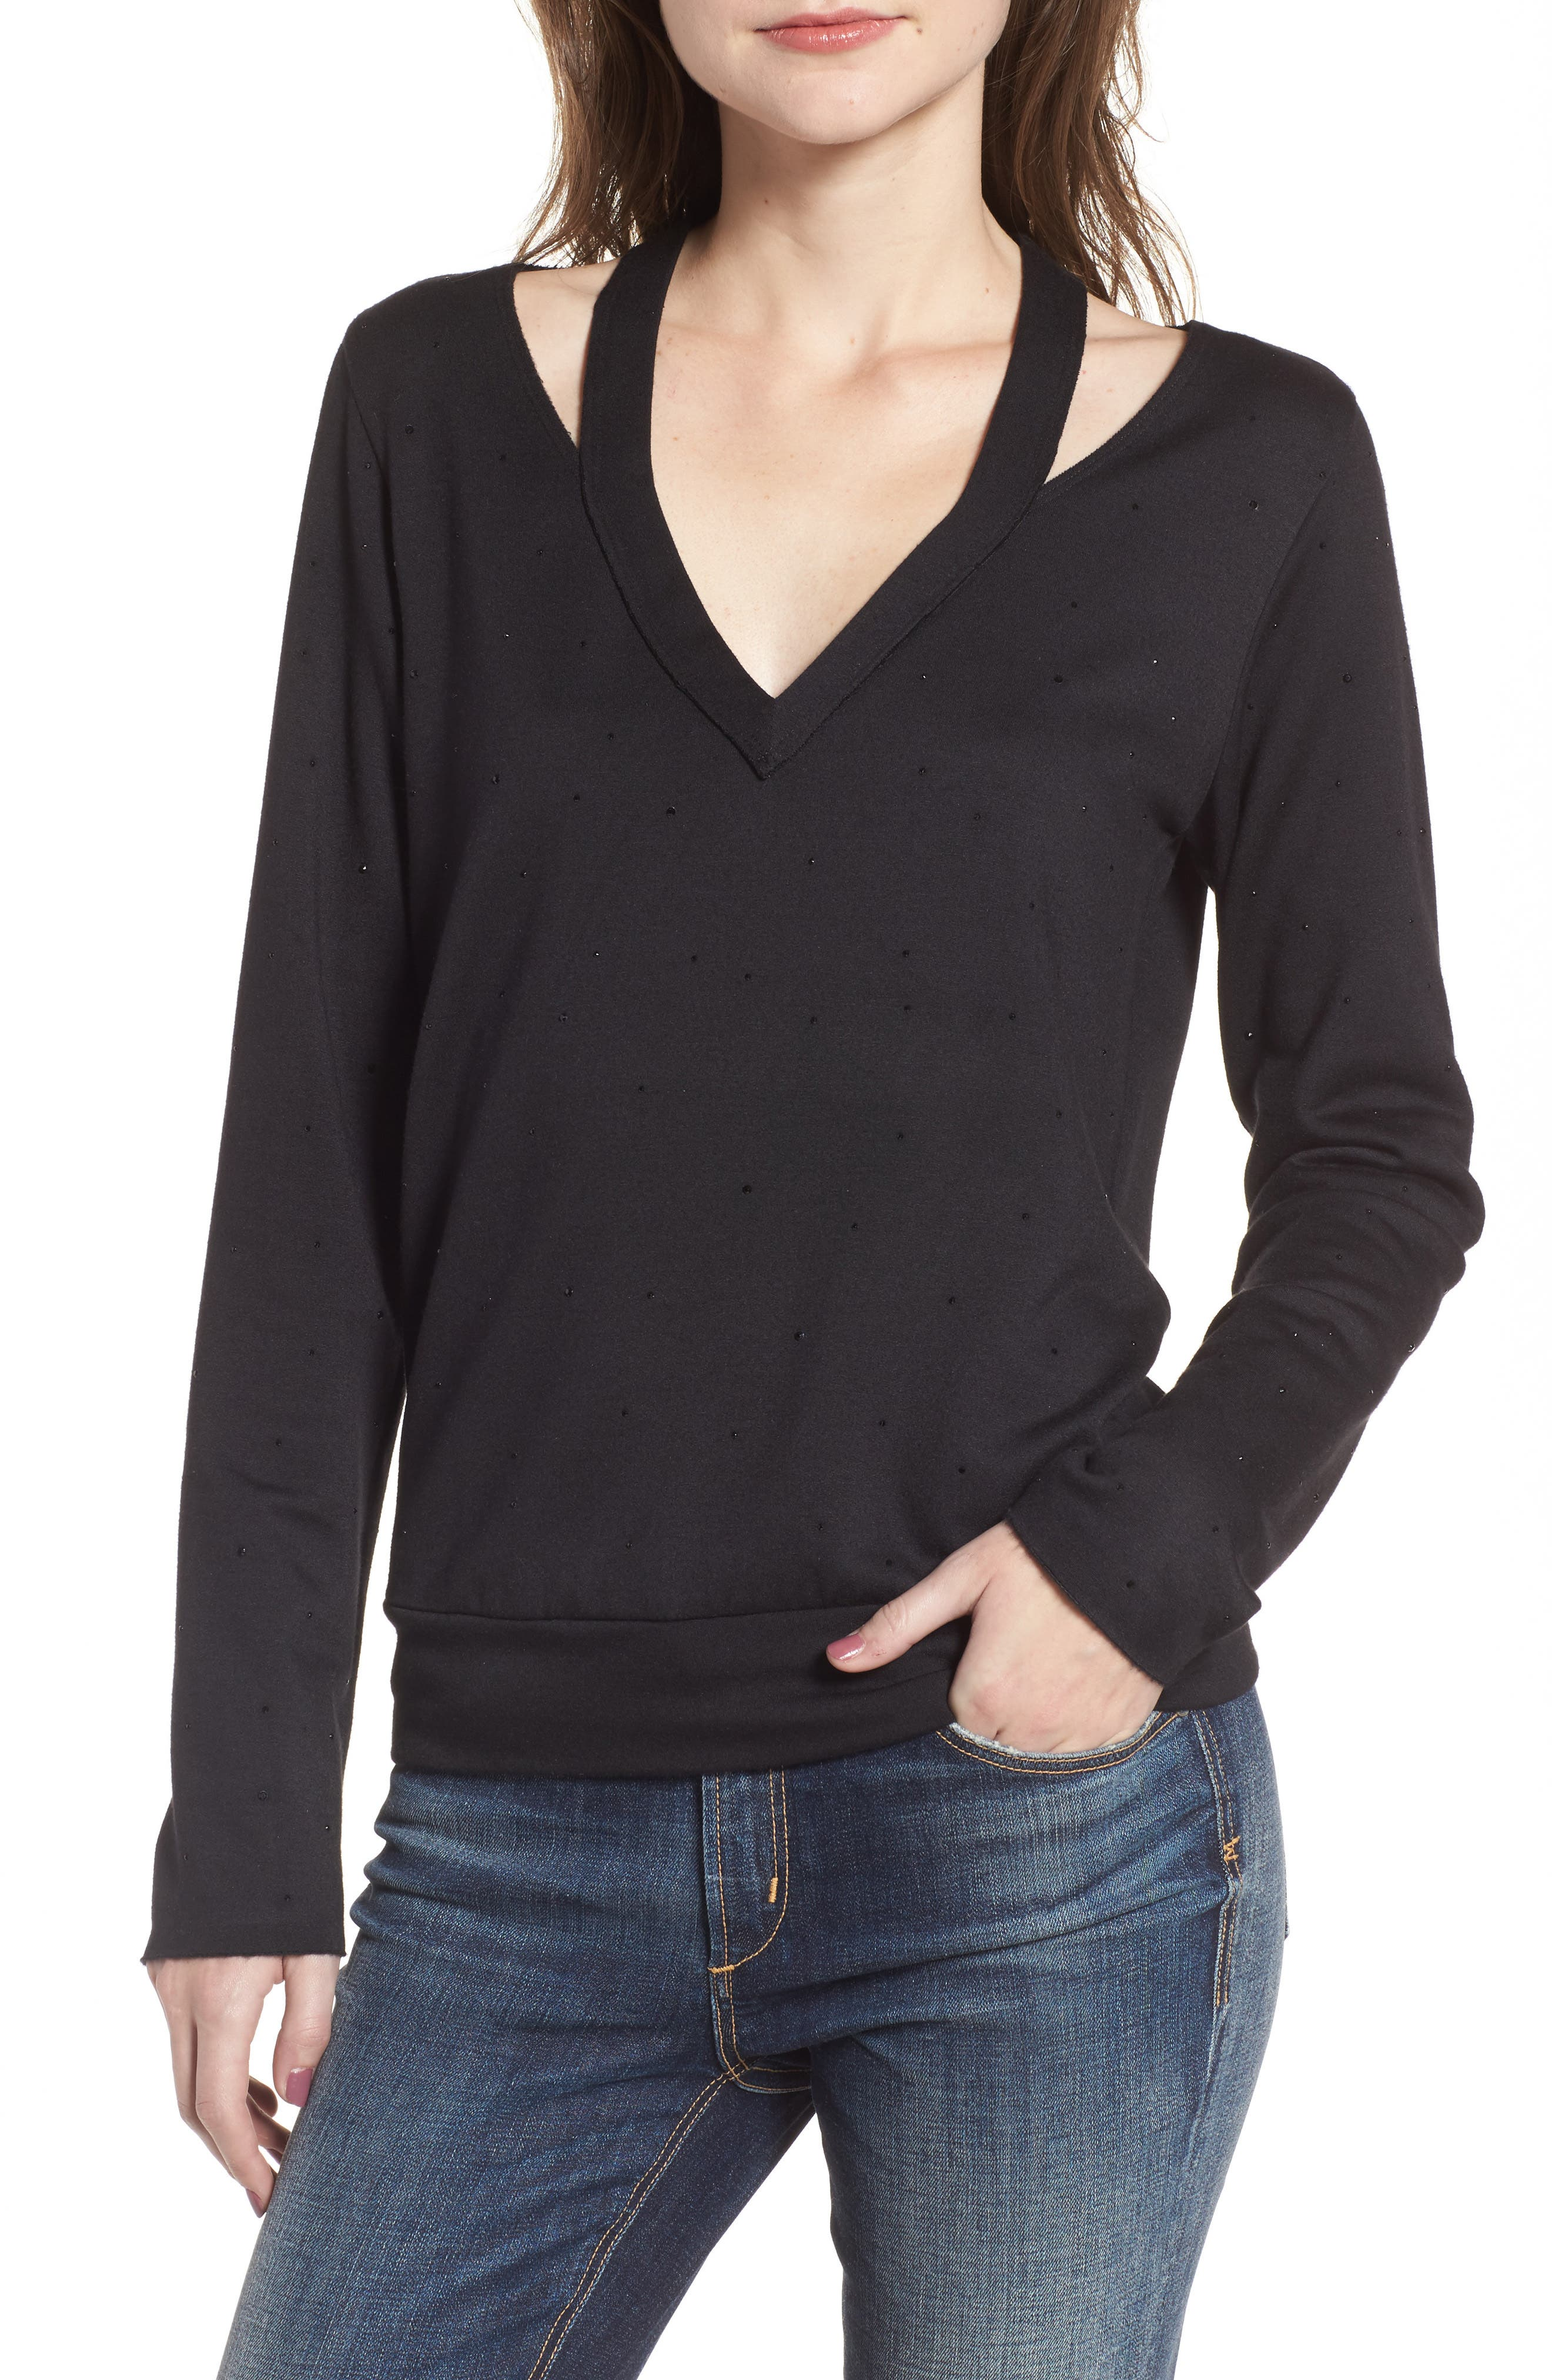 Spin Off Top,                         Main,                         color, Black